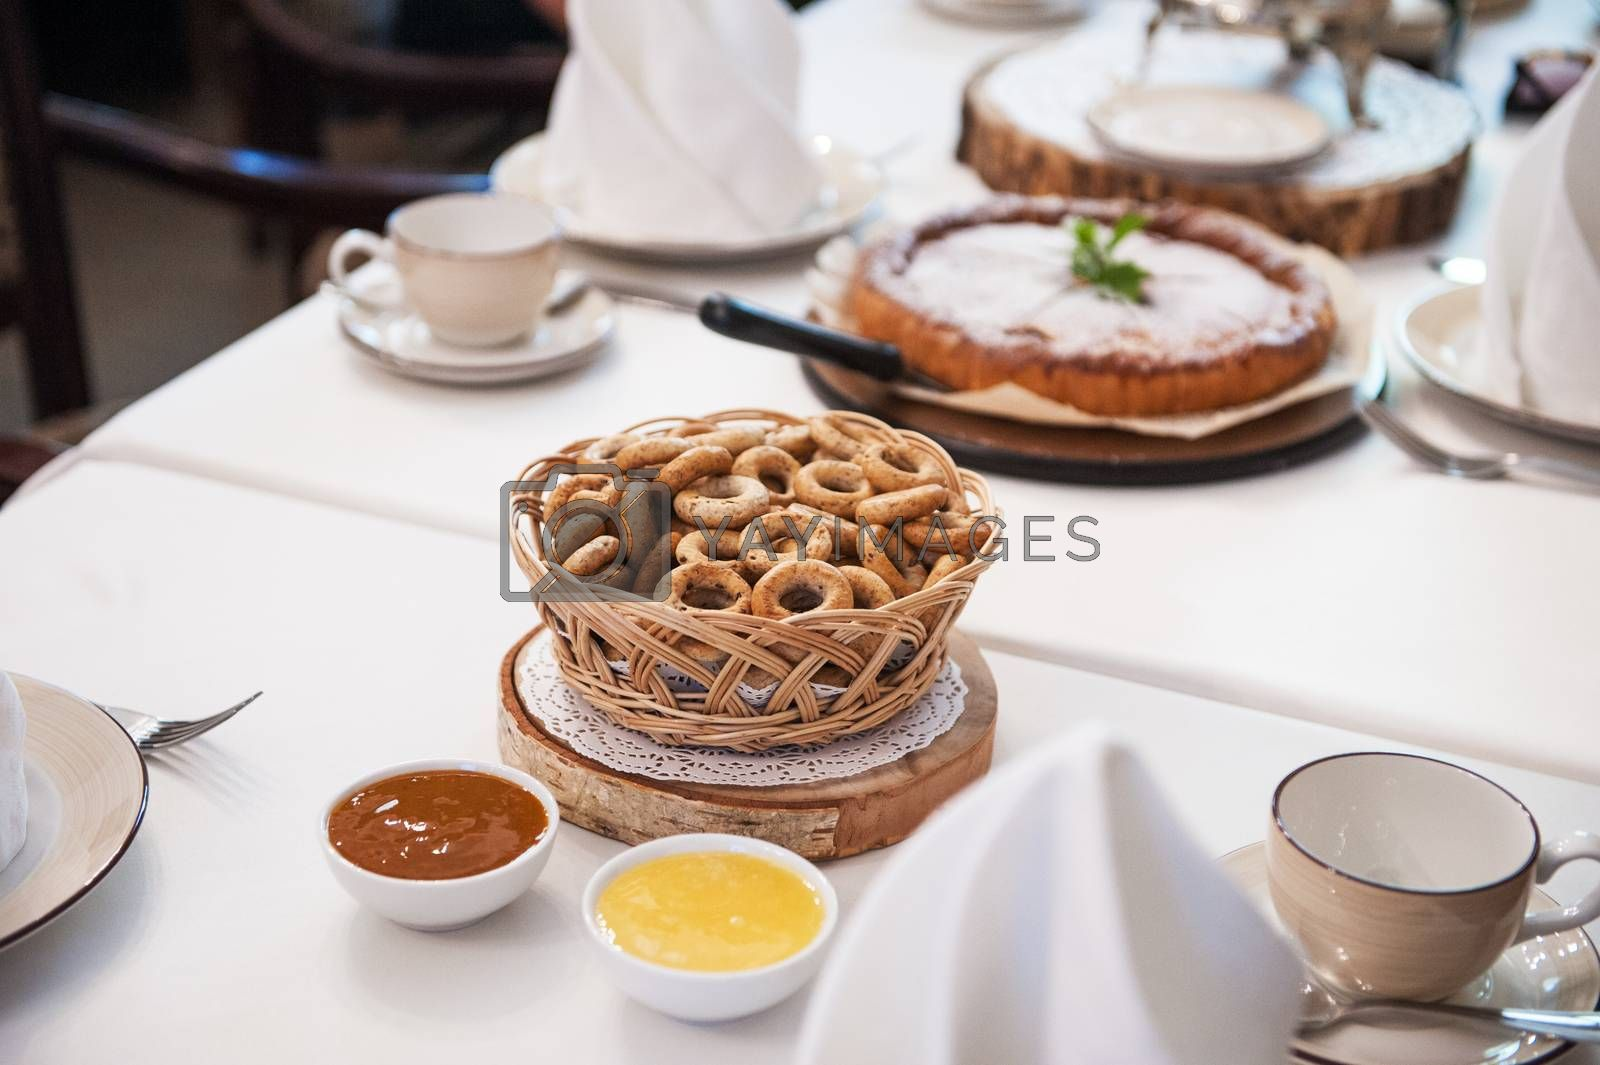 Traditional russian baked goods: pies and pretzels, samovar, honey, jam on the served table